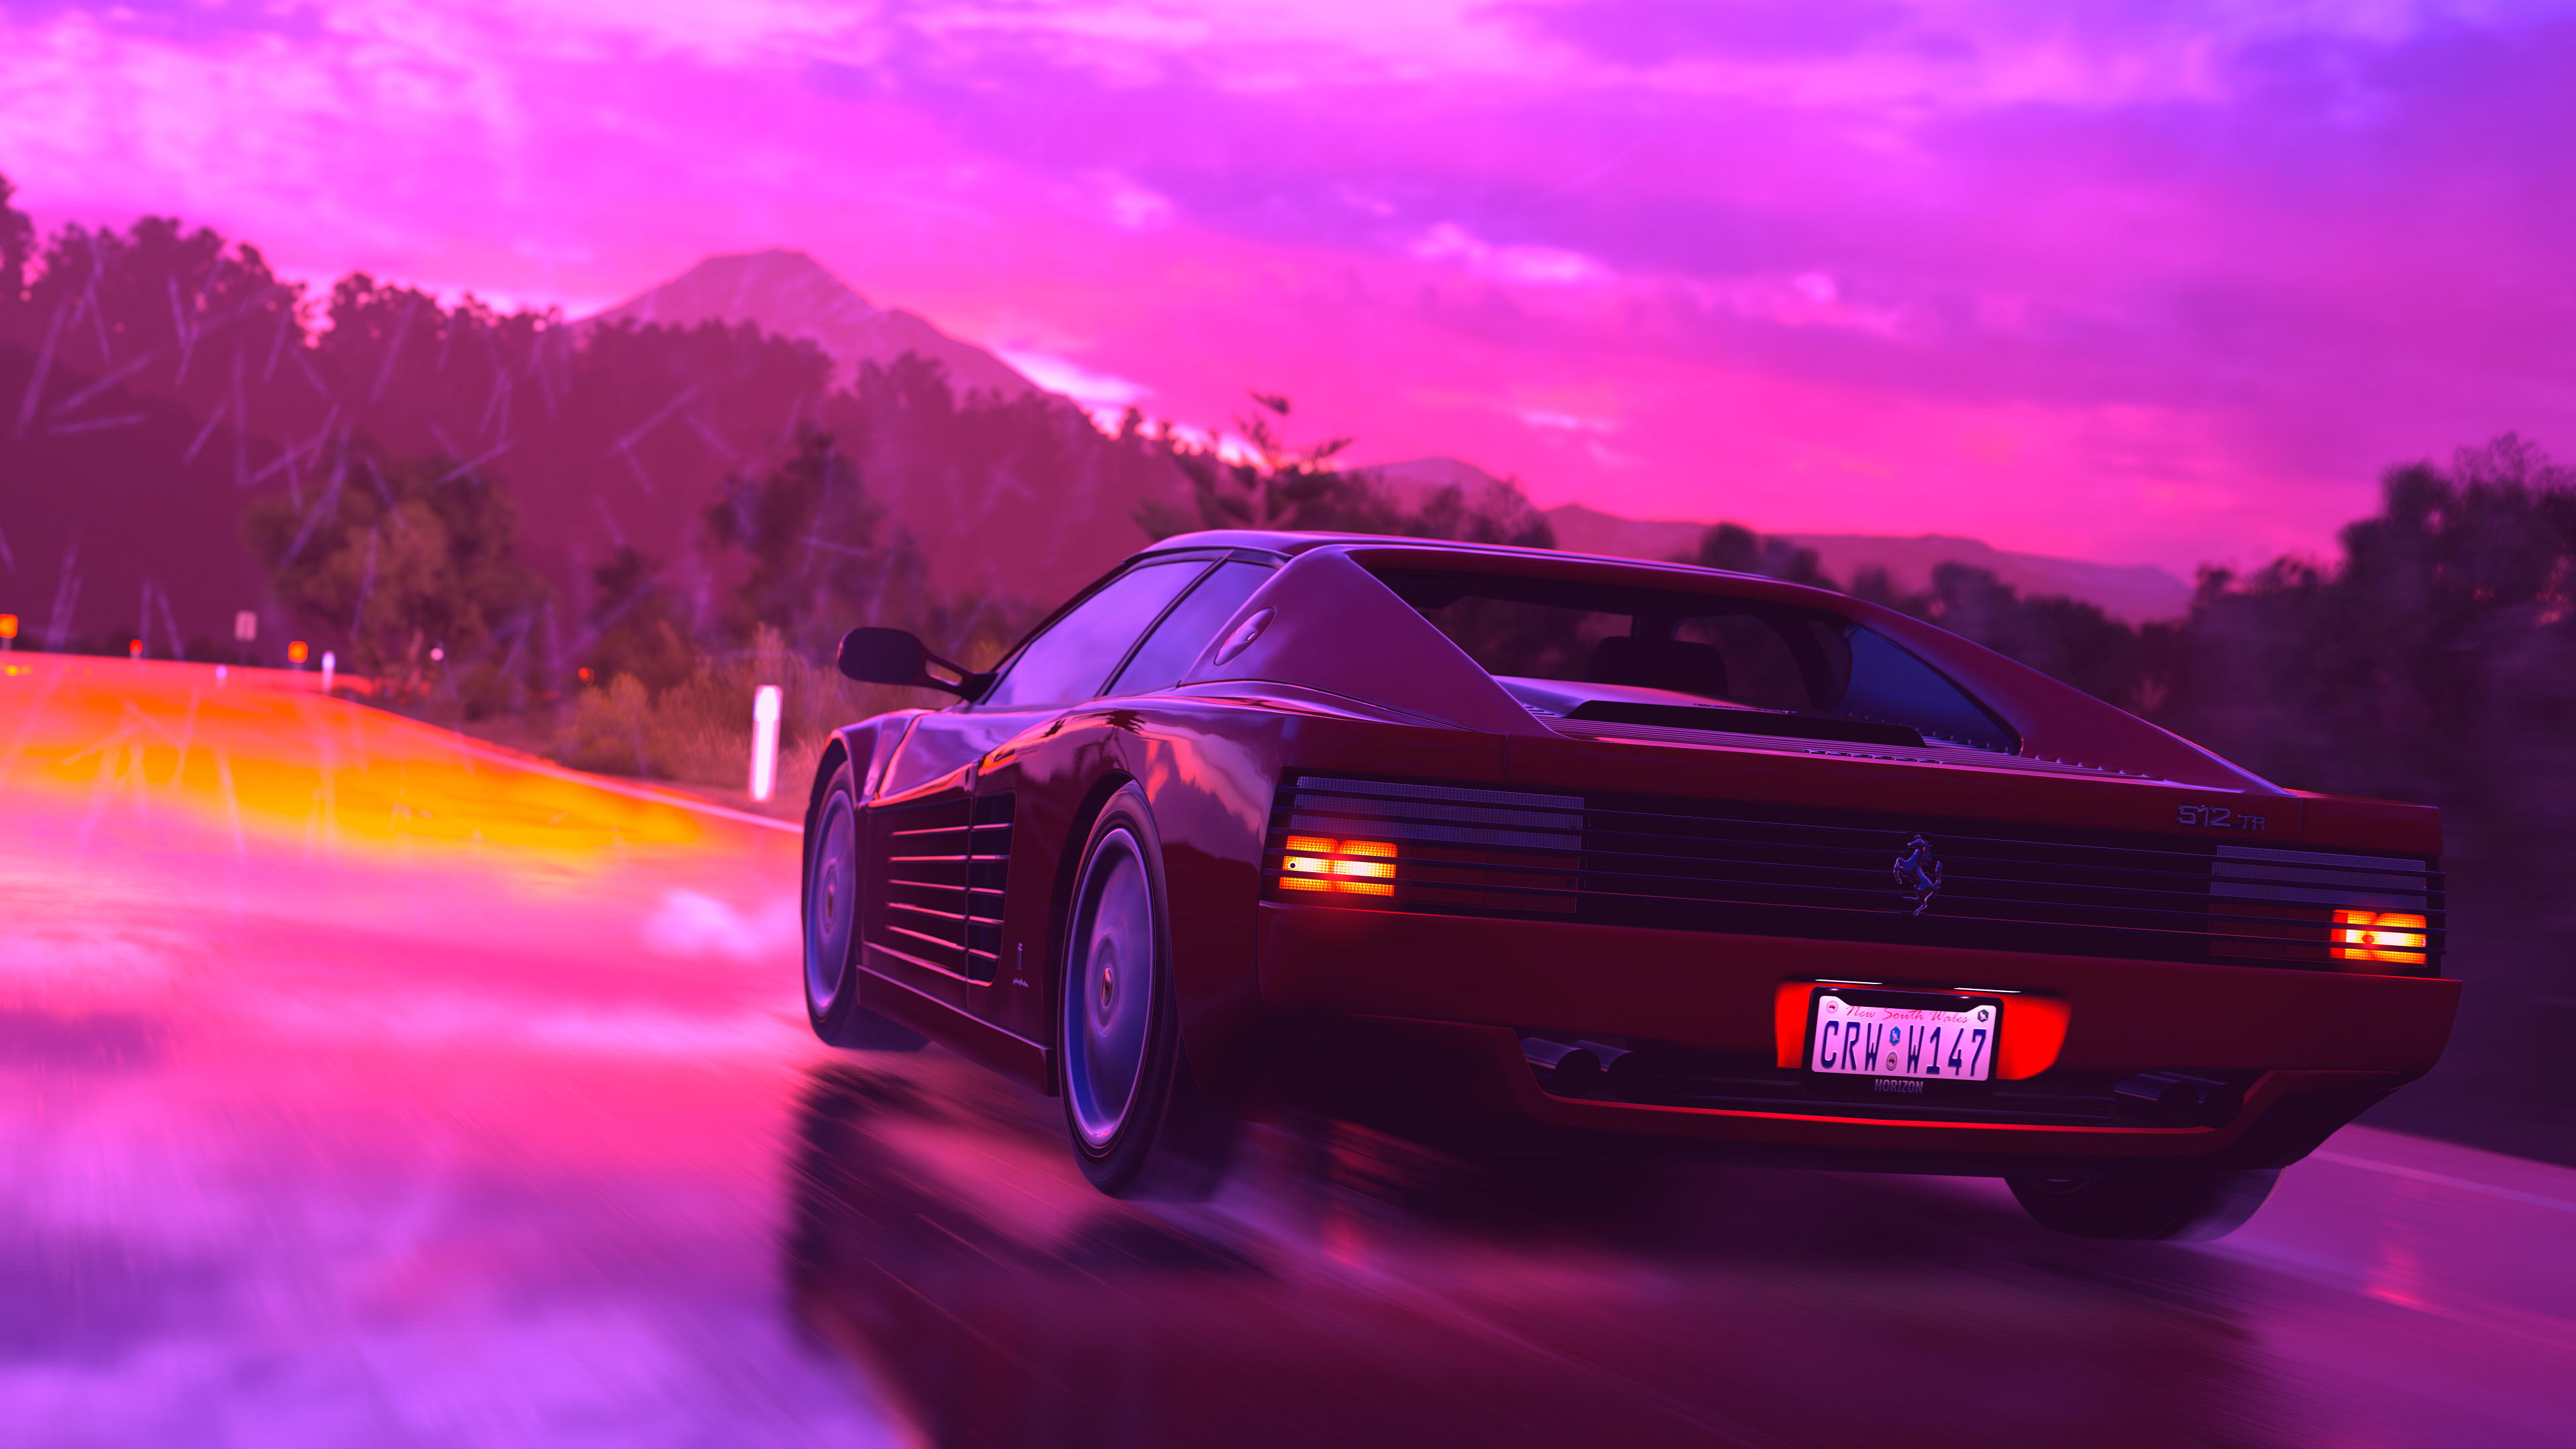 Free Download Wallpaper 4k Ferrari Sports Car Retrowave Art 4k 4k Wallpapers 3840x2160 For Your Desktop Mobile Tablet Explore 36 Retro Wave 4k Pc Wallpapers Retro Wave 4k Pc